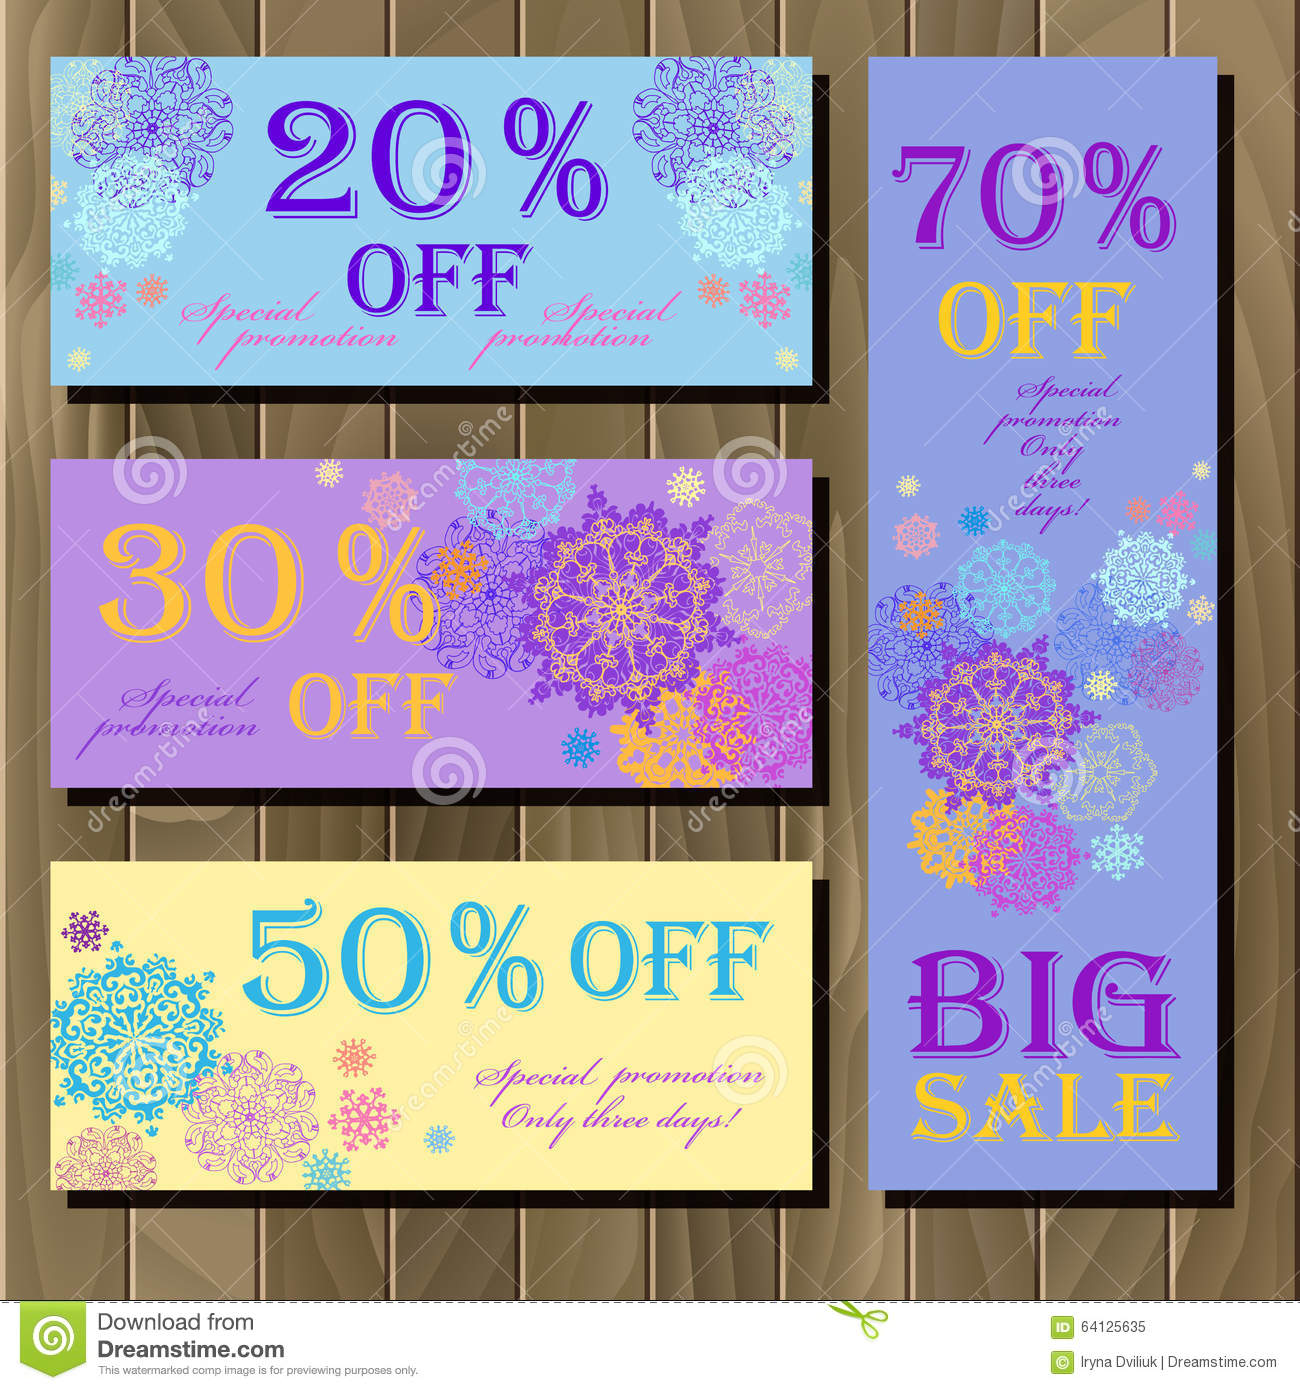 gift coupon template free download